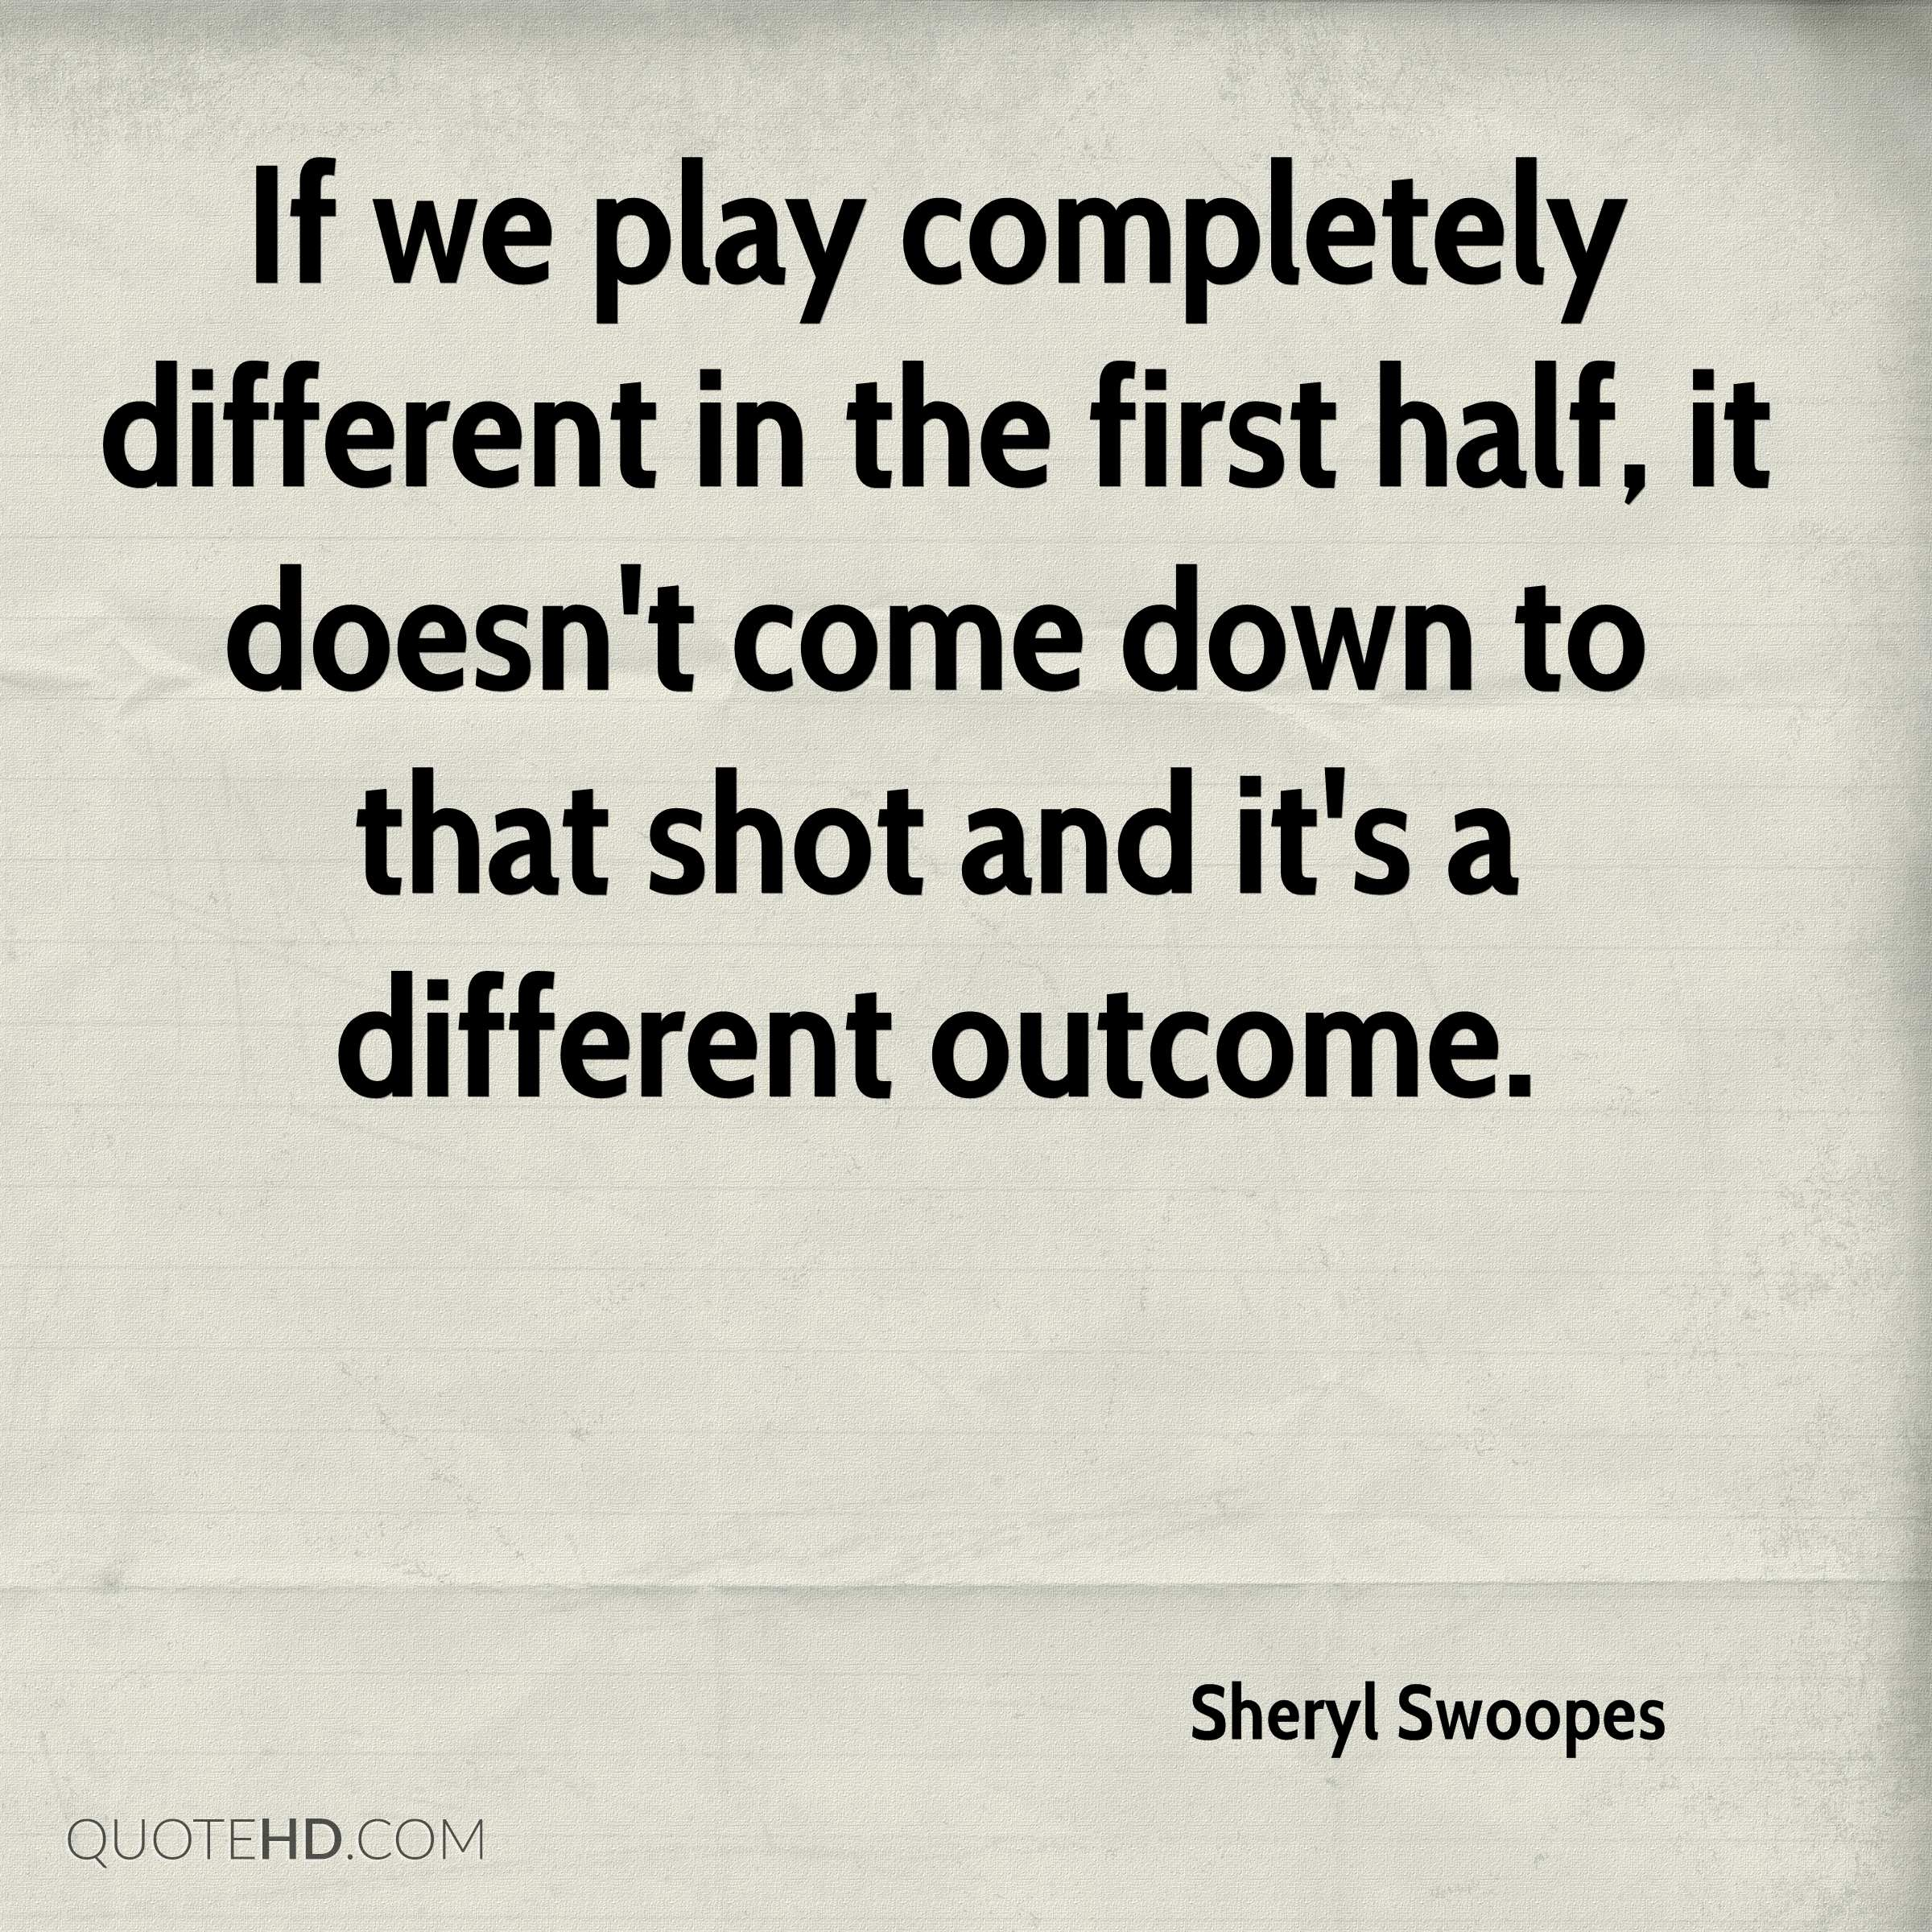 If we play completely different in the first half, it doesn't come down to that shot and it's a different outcome.